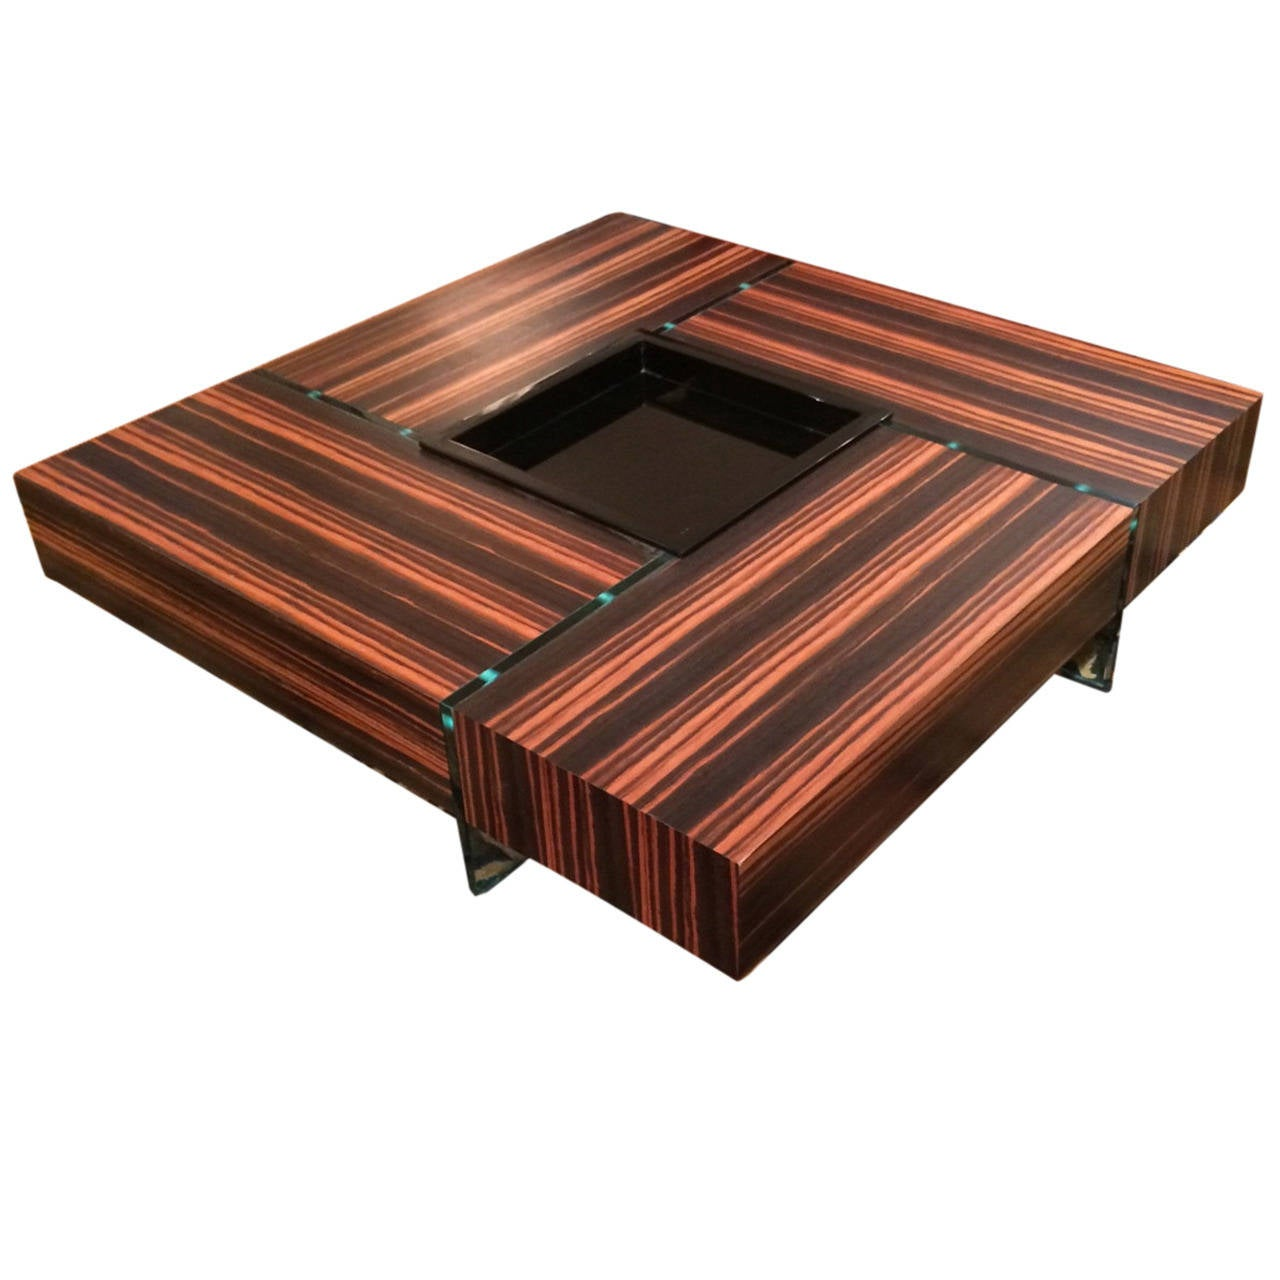 Chic rosewood and glass large square coffee table at 1stdibs Large glass coffee table